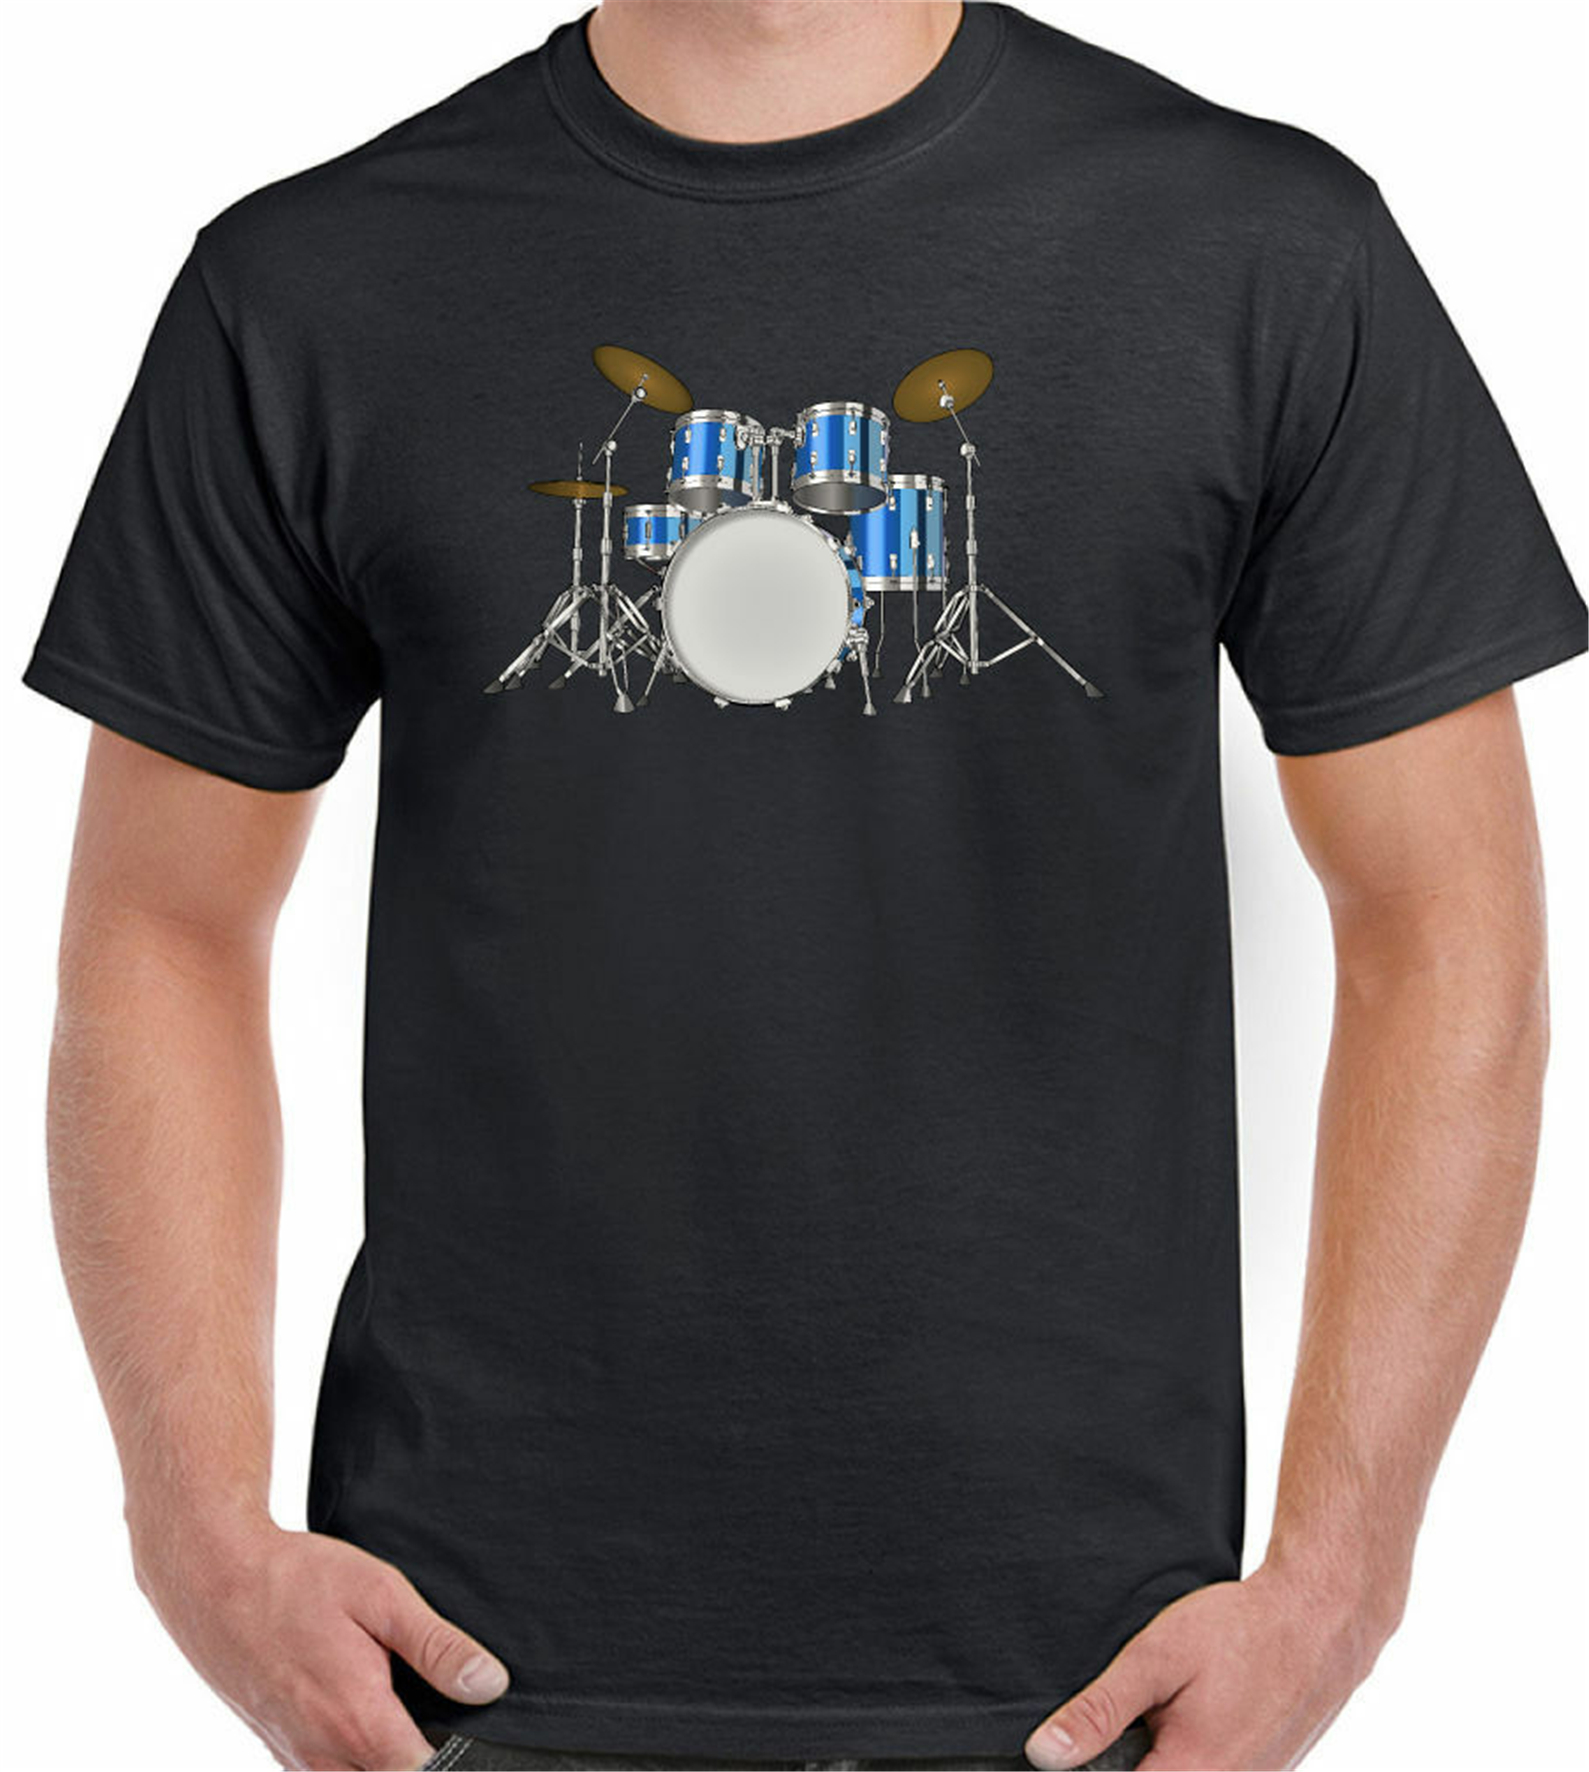 Drum Kit T-Shirt Mens Drumming Rock Drummer Band Keith Moon Sticks Coloured customize O Neck Tops Tee Shirt image